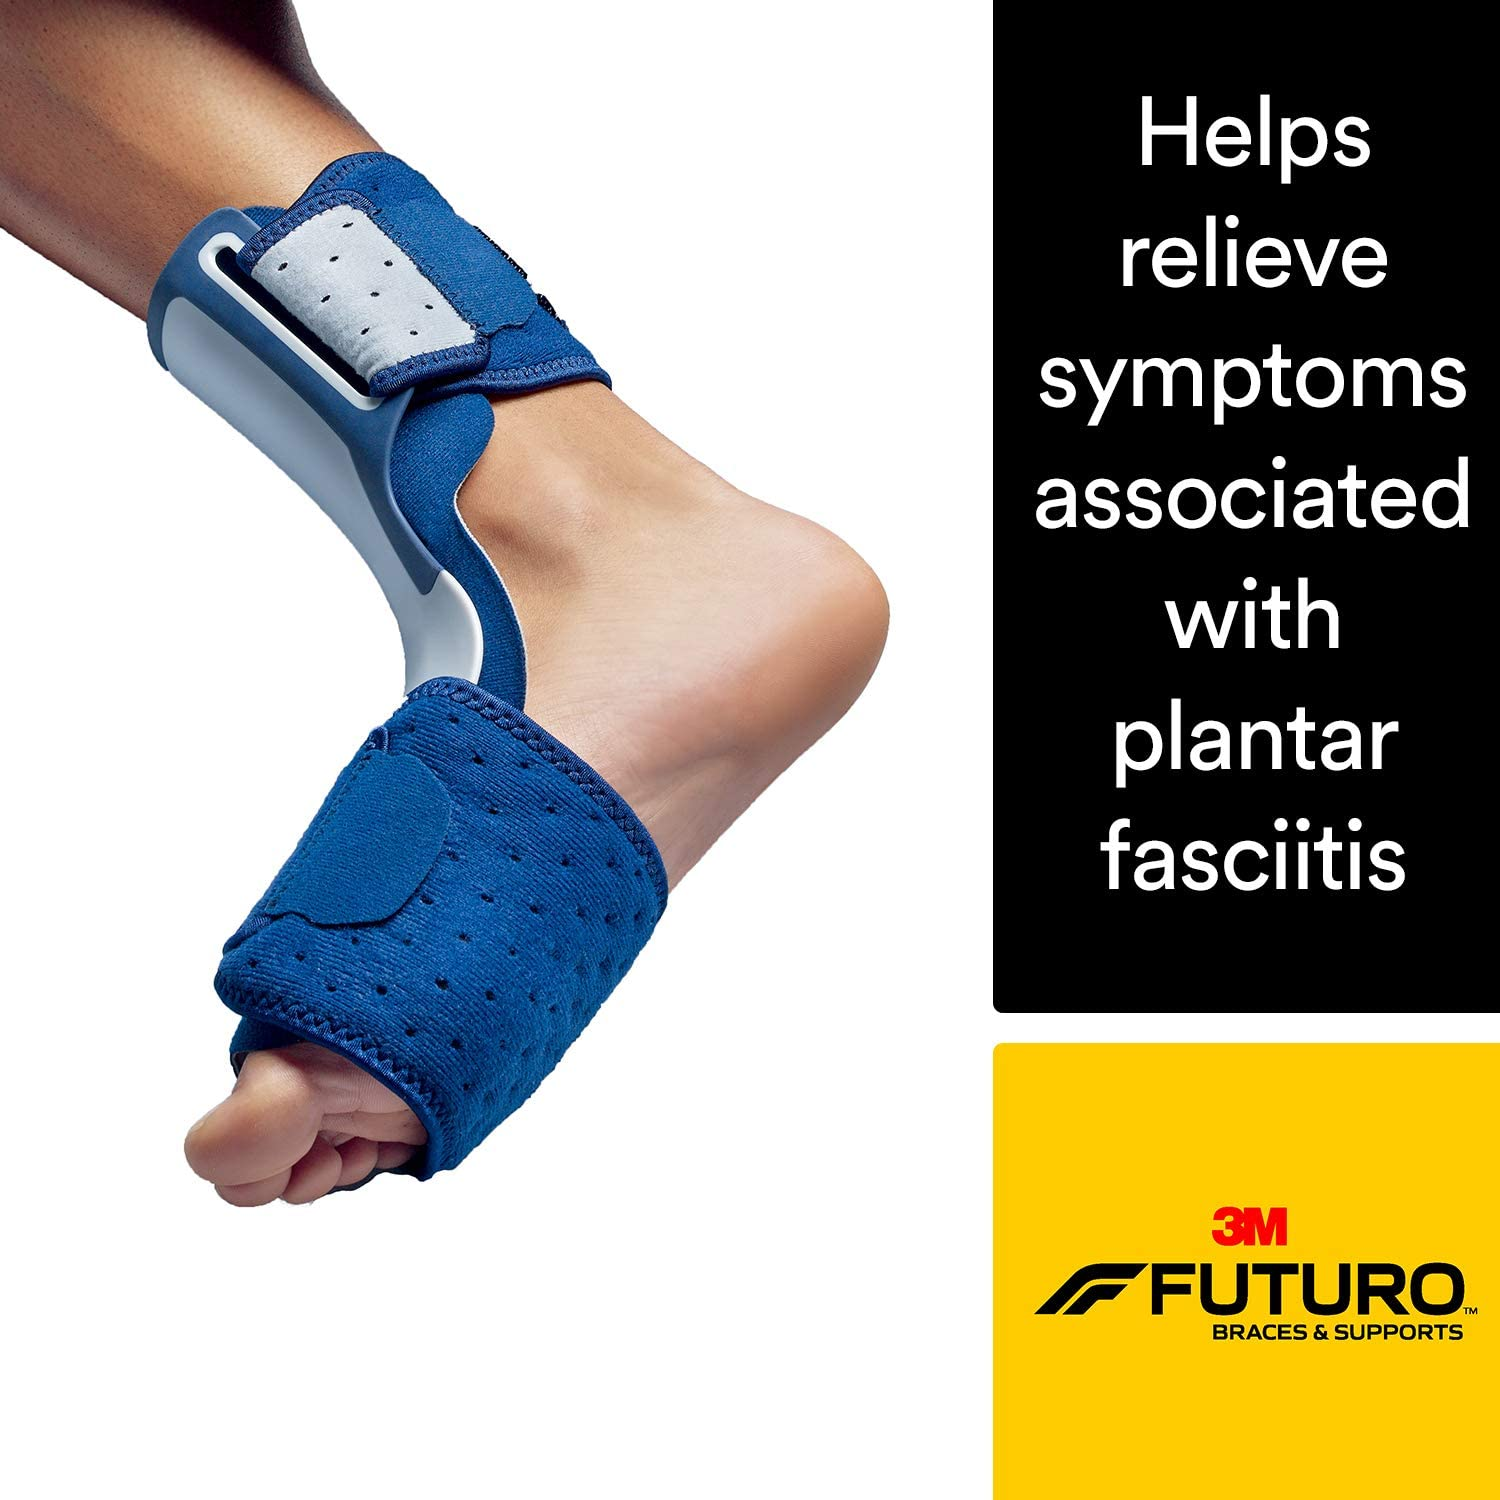 Futuro Night Plantar Fasciitis Sleep Foot Support, Helps Relieve Symptoms of Plantar Fasciitis, Firm Stabilizing Support, Adjust to Fit, Satisfaction Guaranteed